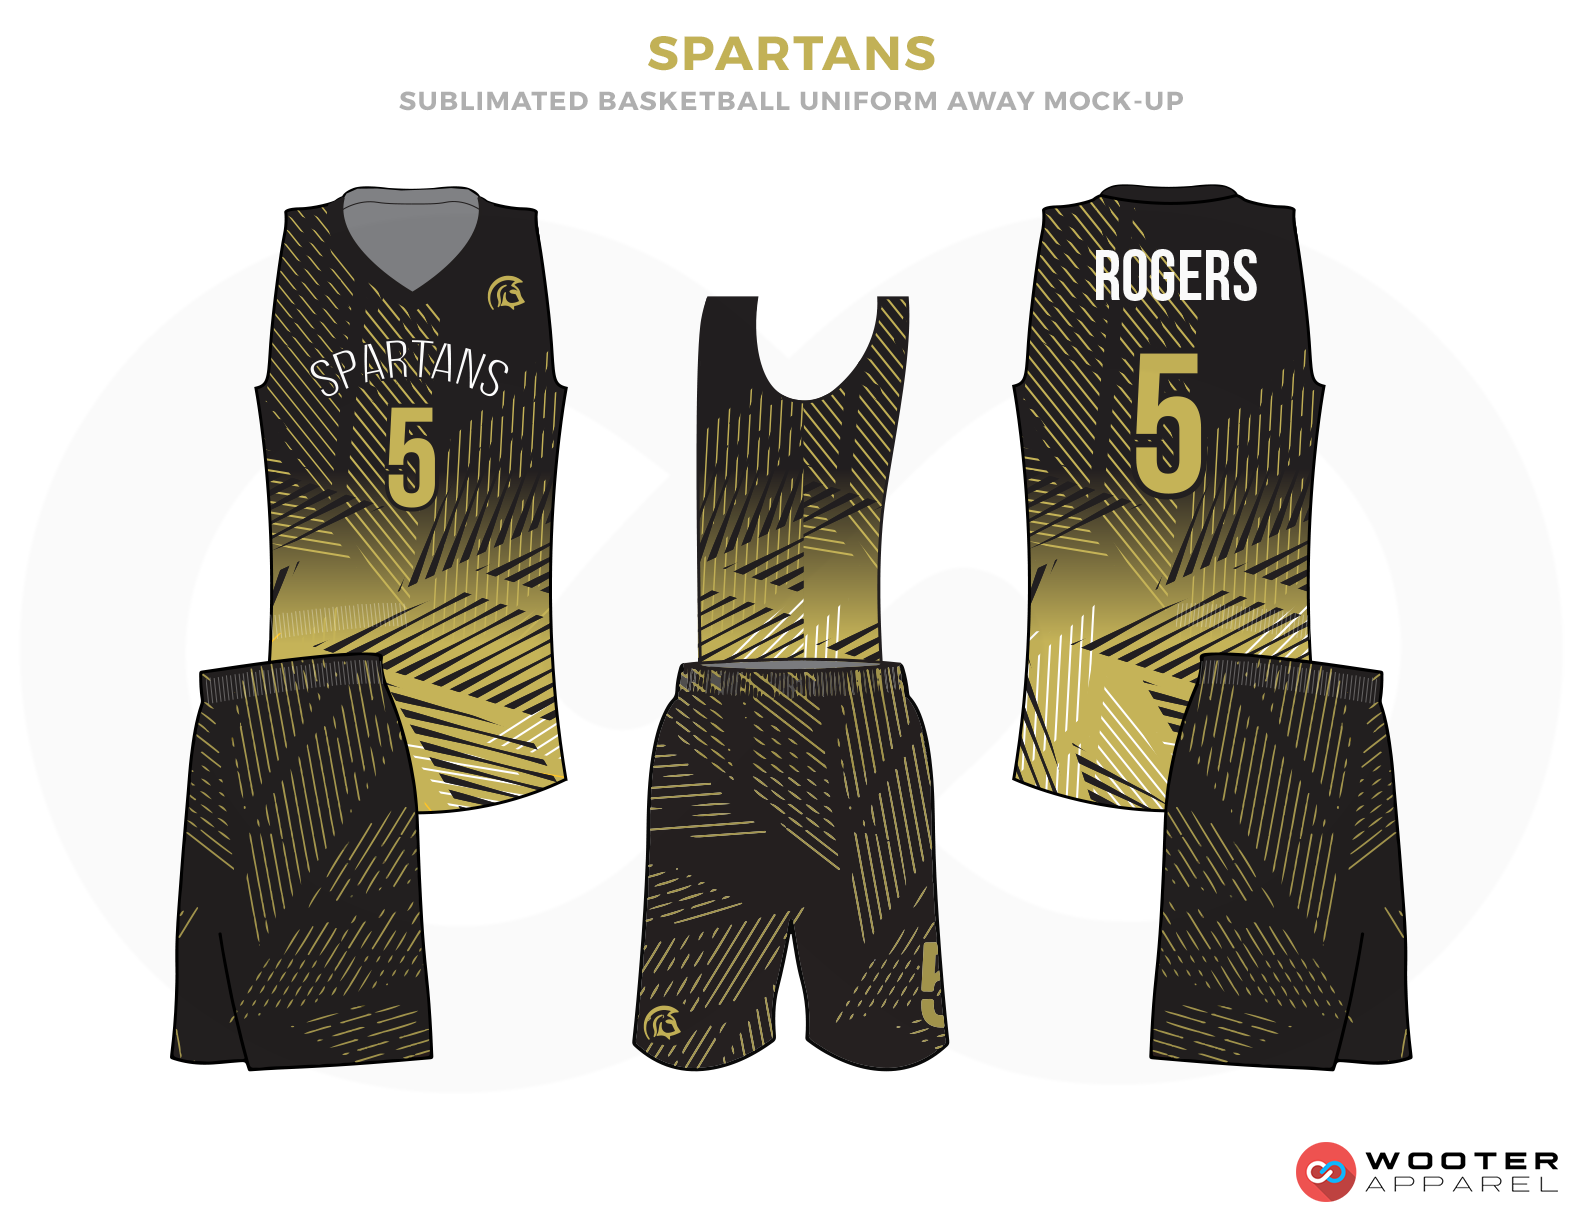 SPARTANS Golden  Black and White Basketball Uniforms, Jersey and Shorts